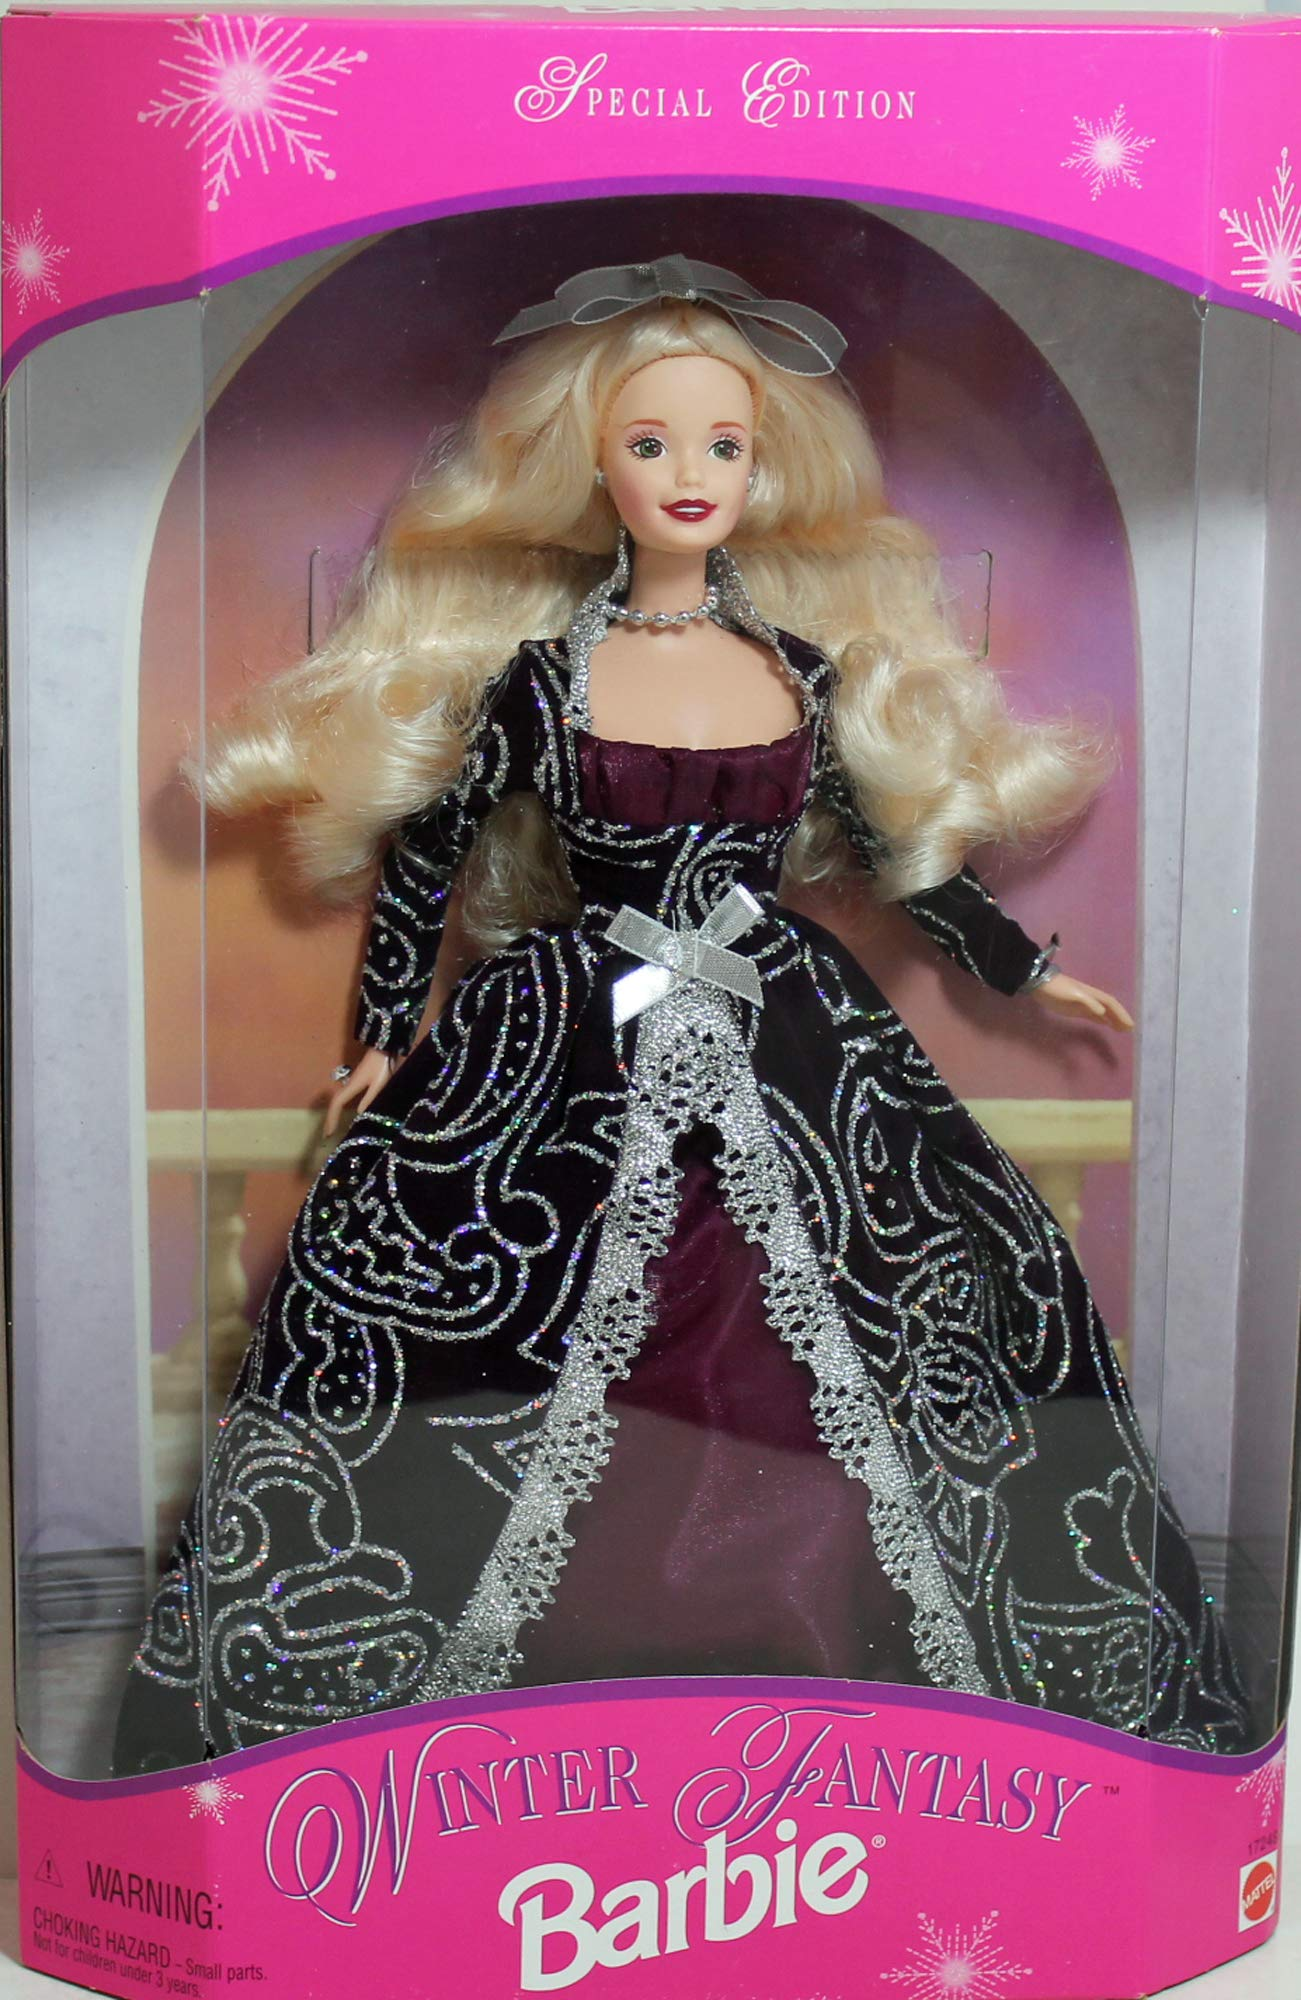 Barbie 1996 Winter Fantasy 2 Blonde Sam S Club Exclusive Buy Online In Bahamas Barbie Products In Bahamas See Prices Reviews And Free Delivery Over Bsd80 Desertcart